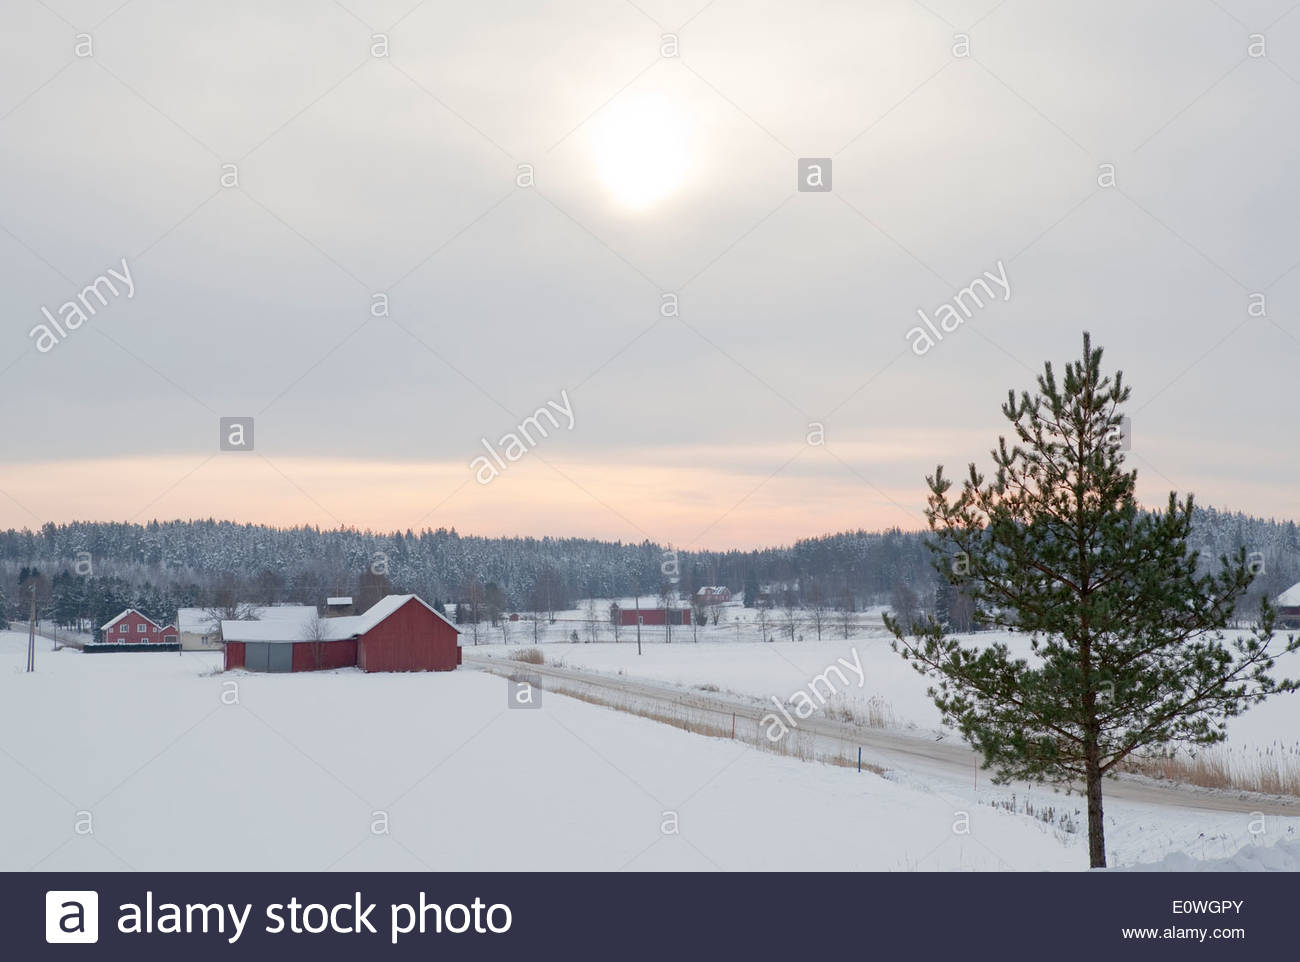 Rural countryside in winter - Stock Image